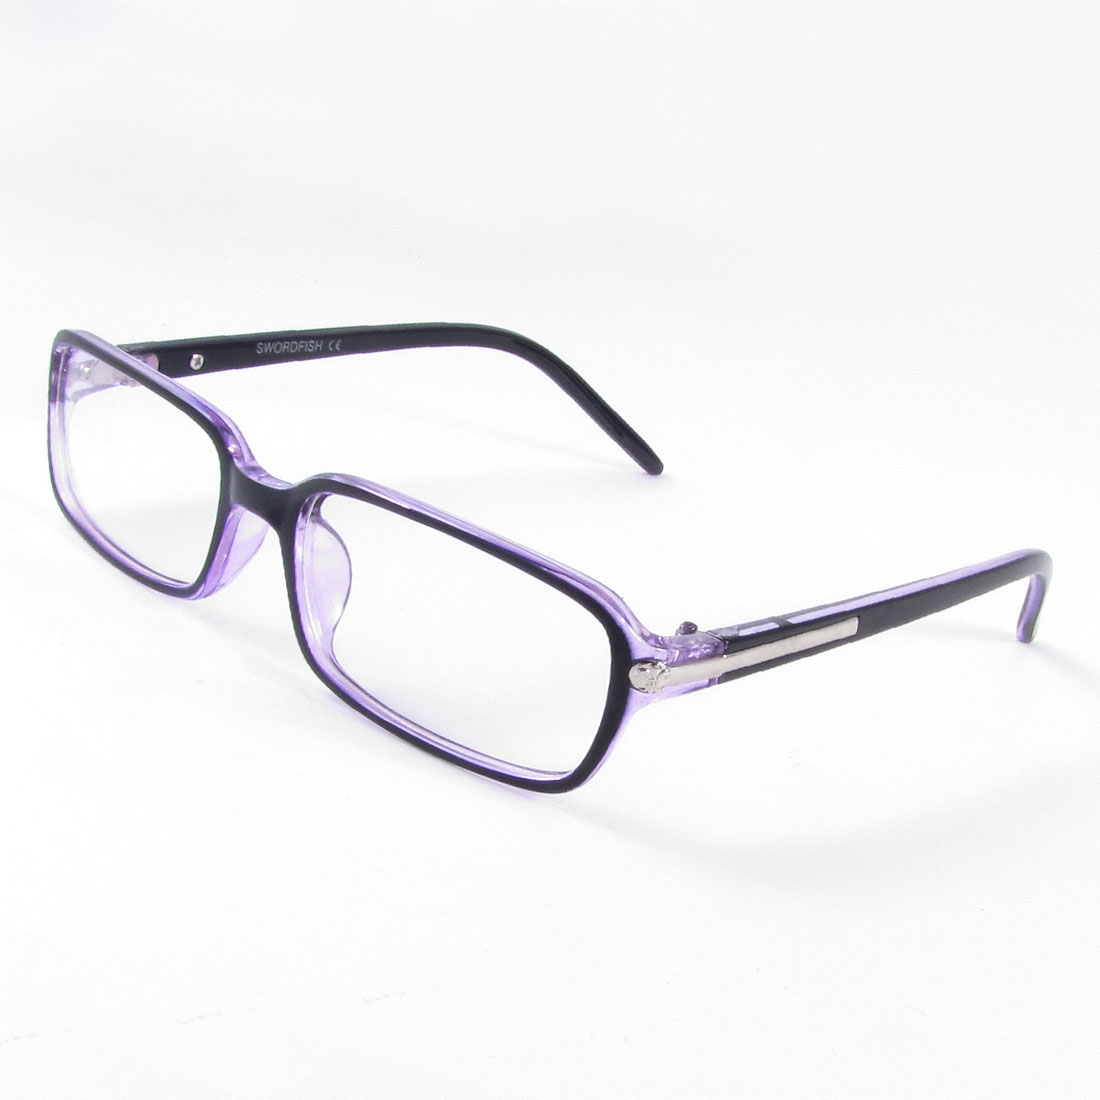 Plastic Single Bridge Clear Lens Plano Plain Glasses Purple for Lady Woman